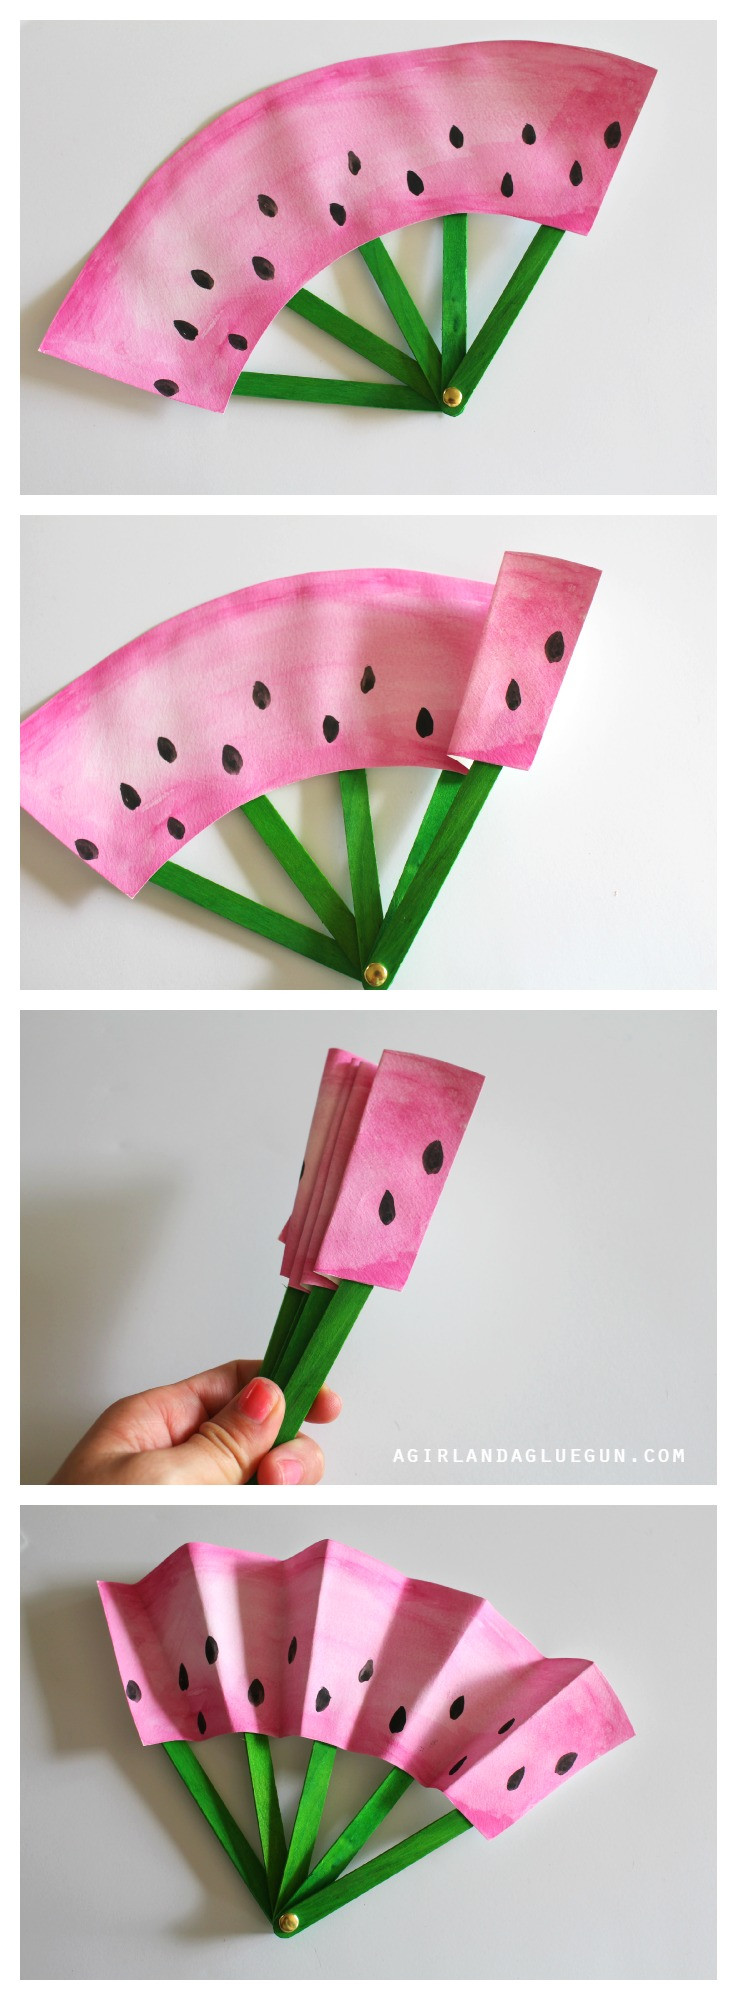 Best ideas about Arts & Crafts For Kids . Save or Pin DIY Fruit Fans Kids Craft The Idea Room Now.